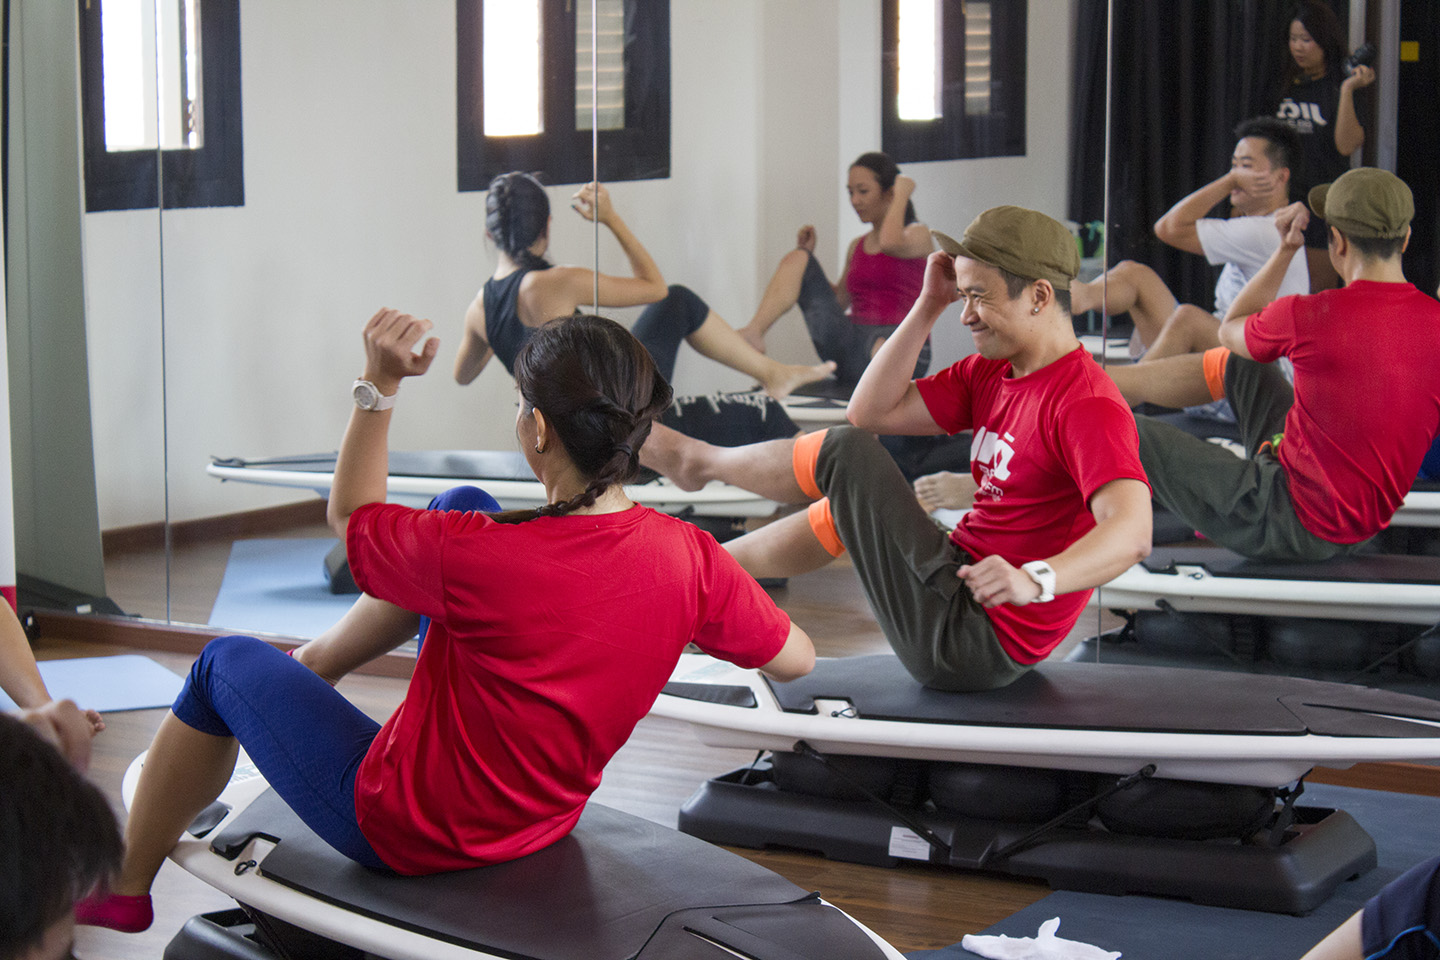 883 jia fm surfset fitness class straddle knee ups